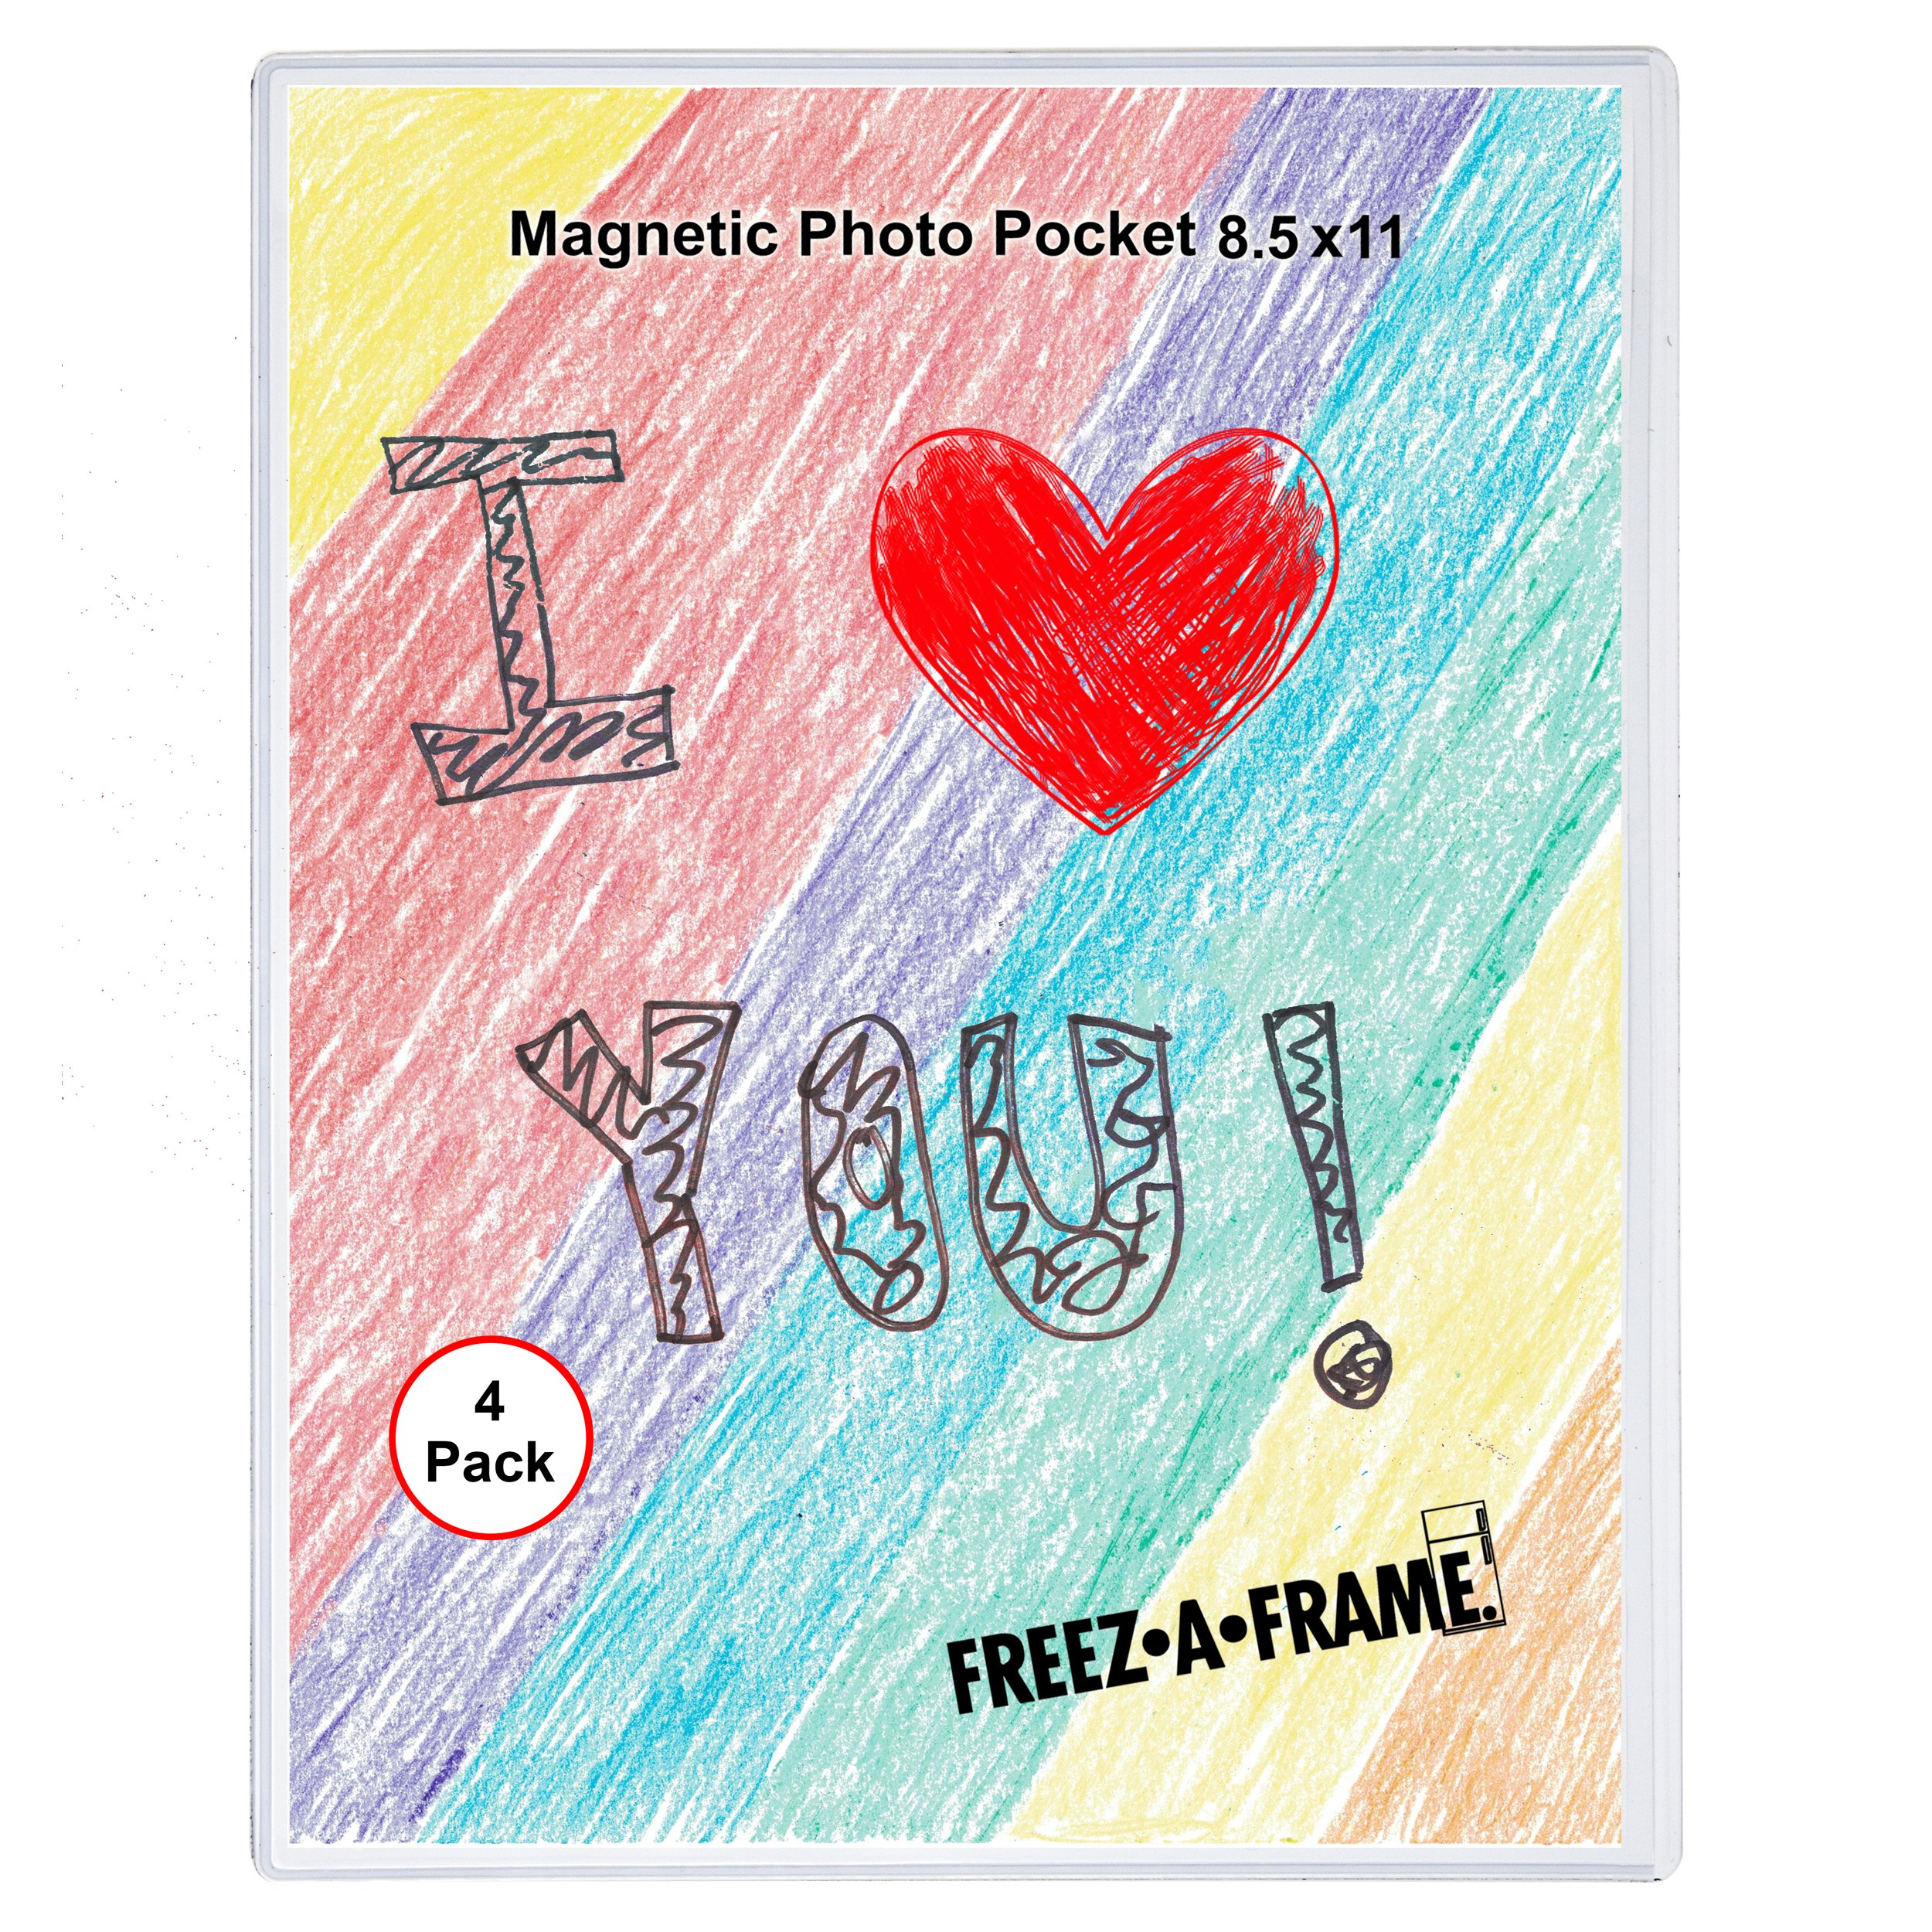 4 Pack 8.5 X 11 Magnetic Picture Frame Use for 8 X 10 Photo, Children's Artwork Frame, Magnetic Calendar Plastic Refrigerator Insert Holder Sleeve Pocket by Freez-a-Frame Made in the USA by Gift Boutique